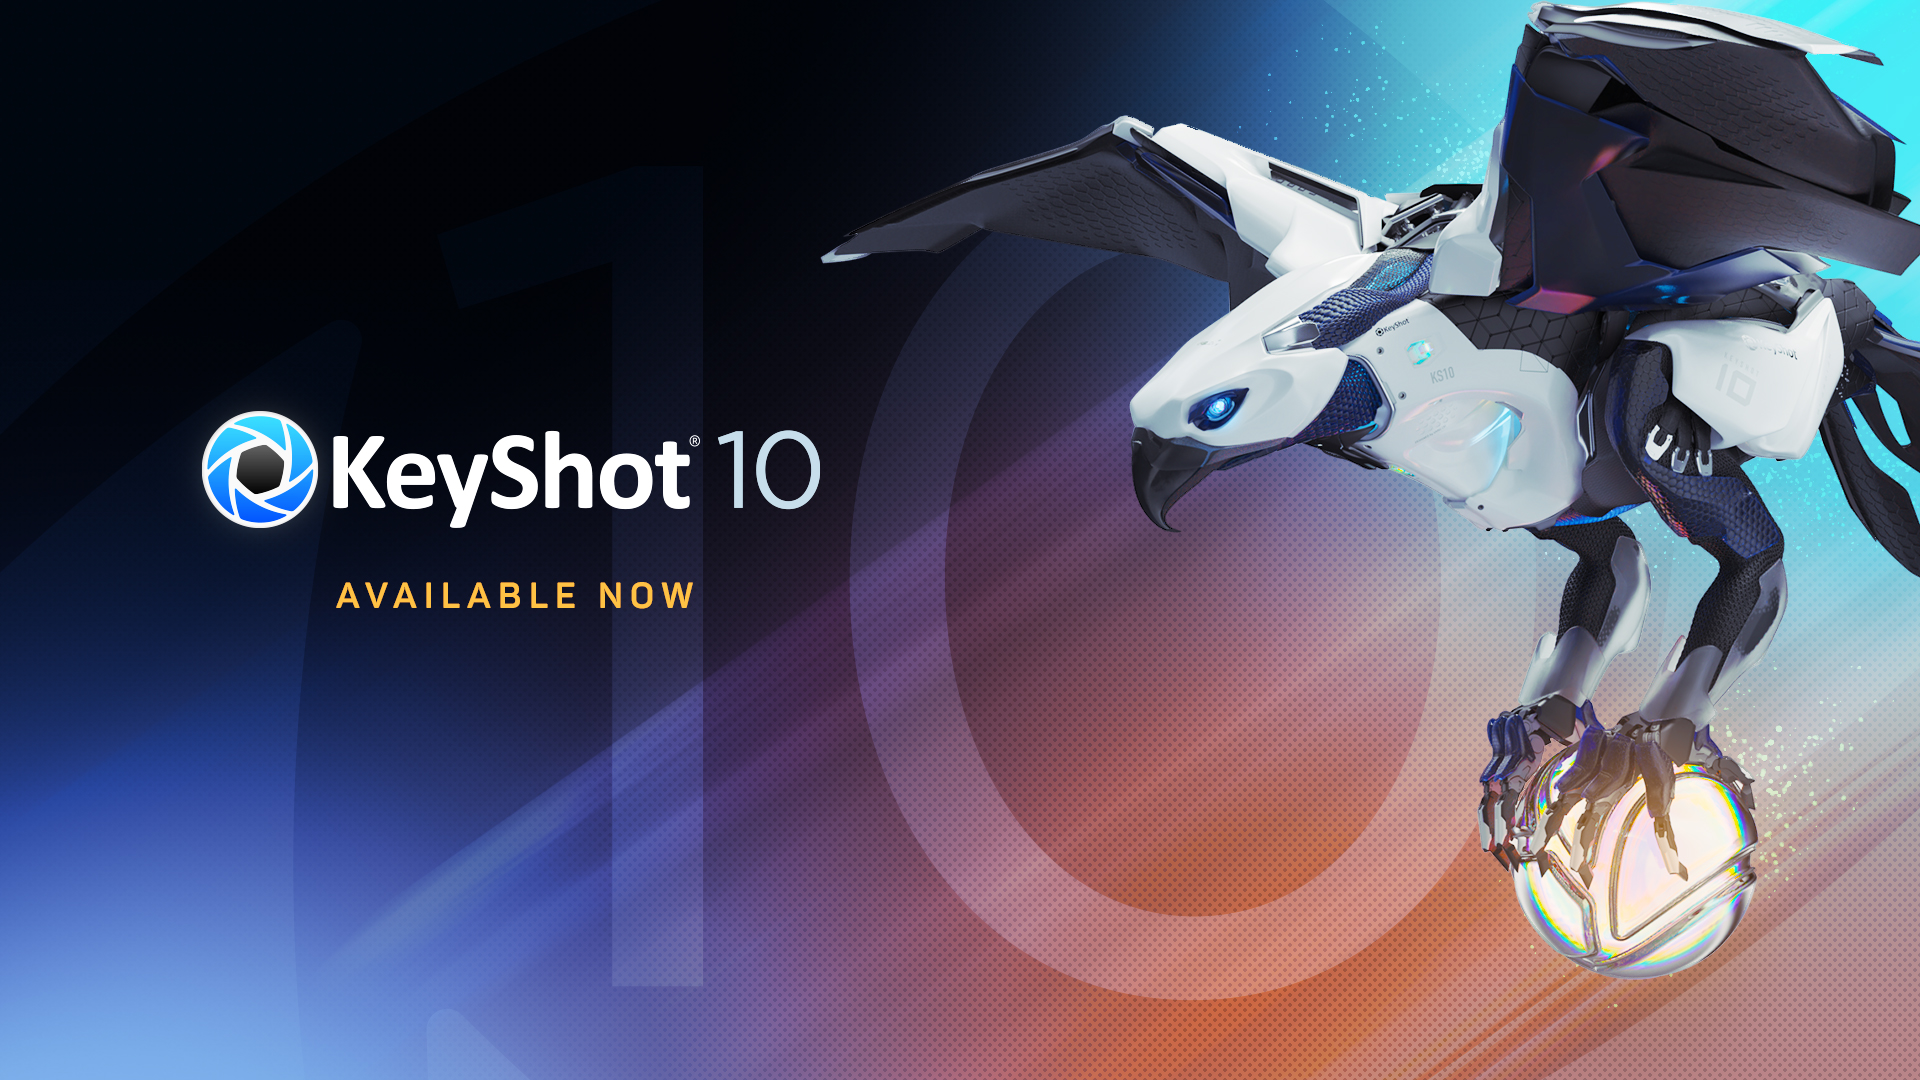 KeyShot 10 is available now